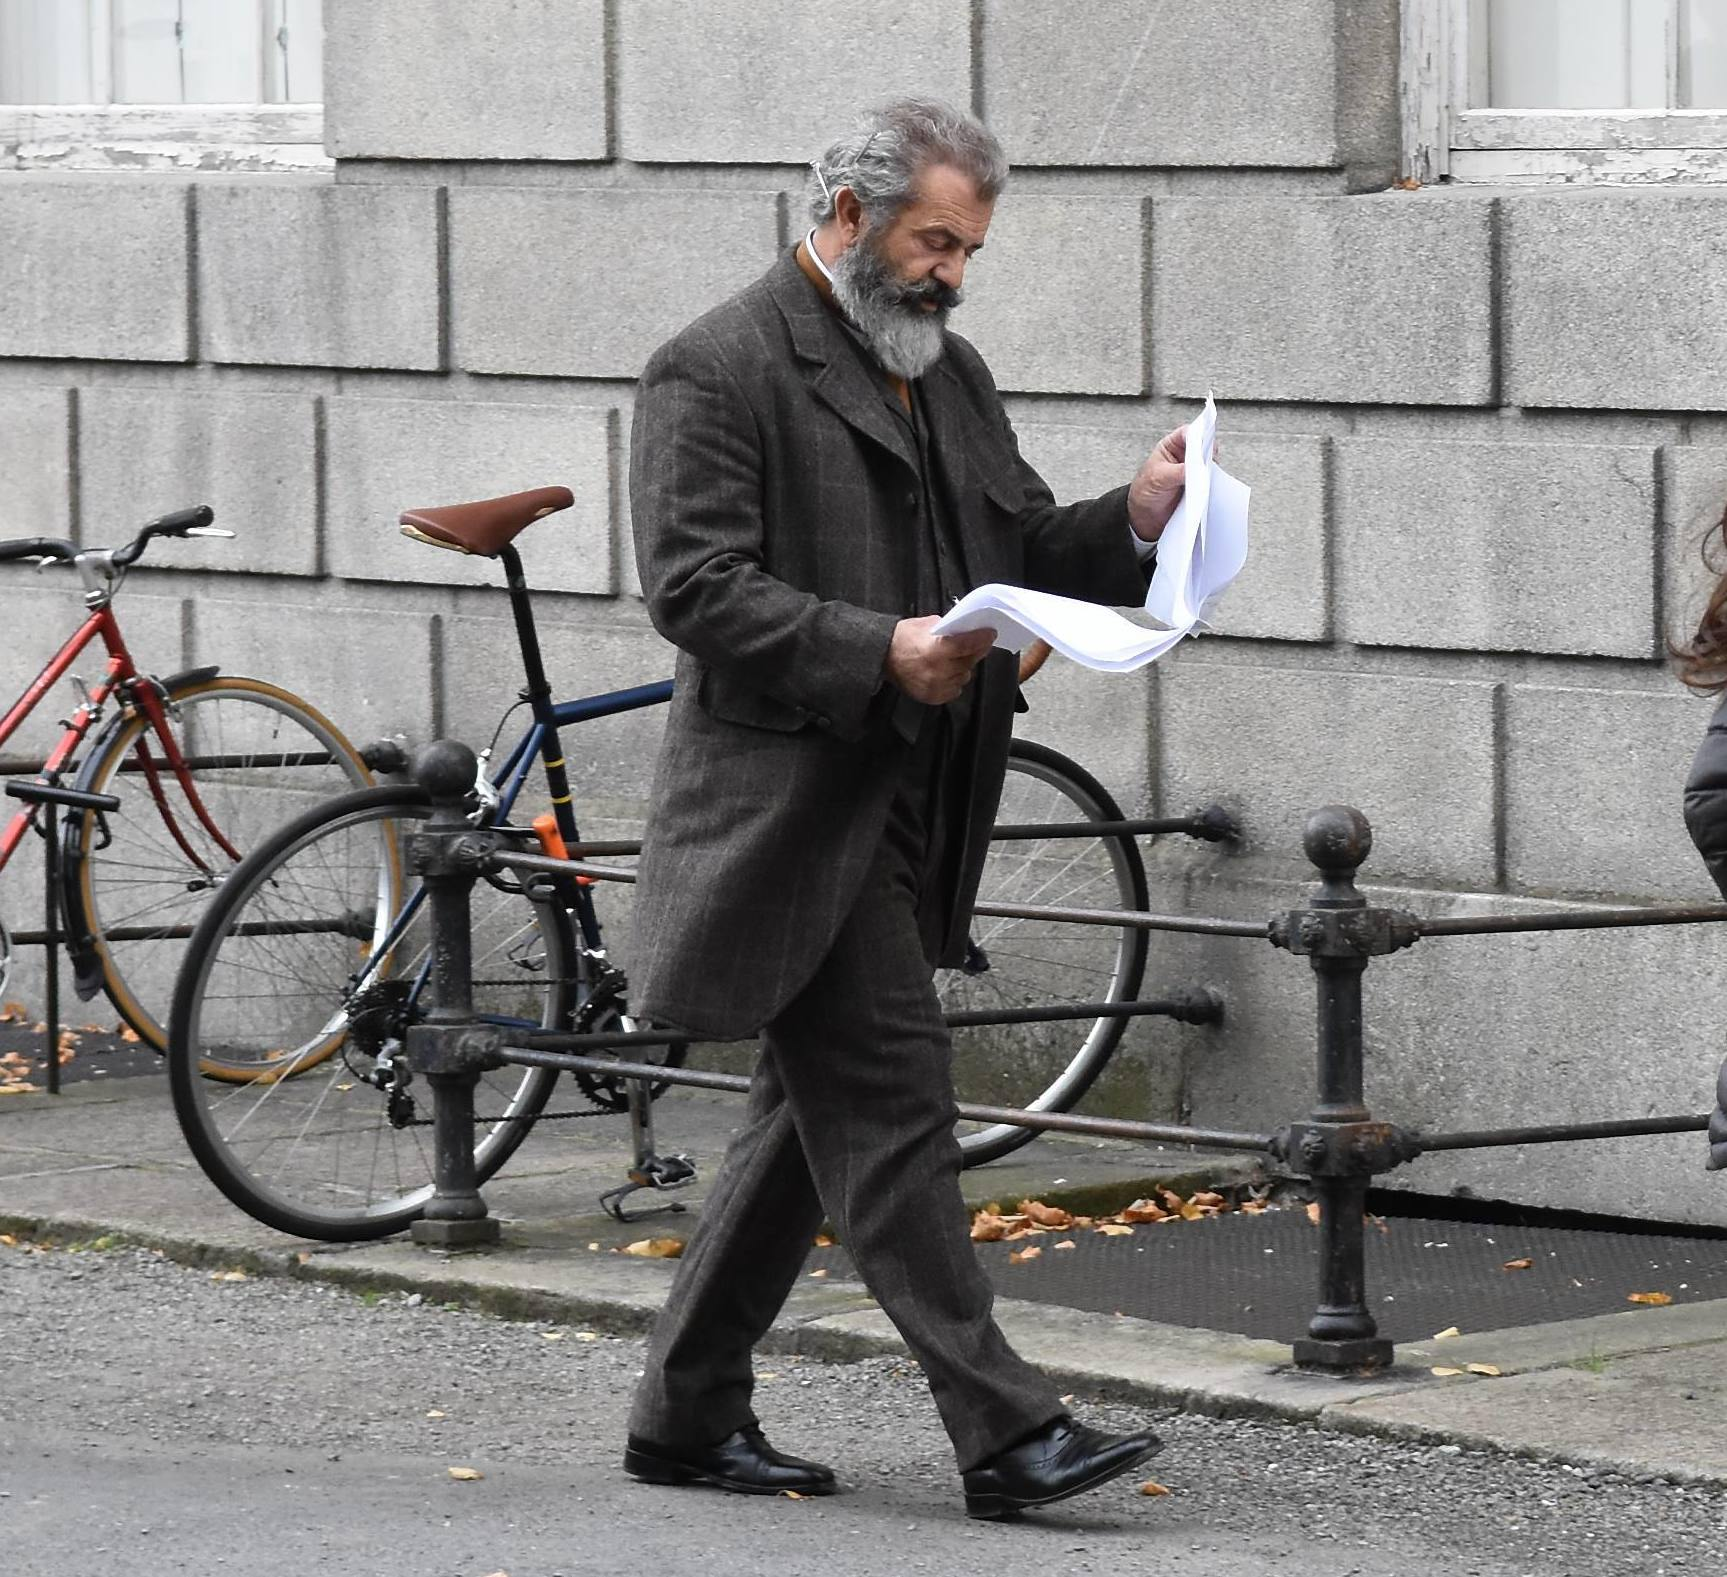 EXCLUSIVE Mel Gibson Bare Chested on Dublin Movie Set